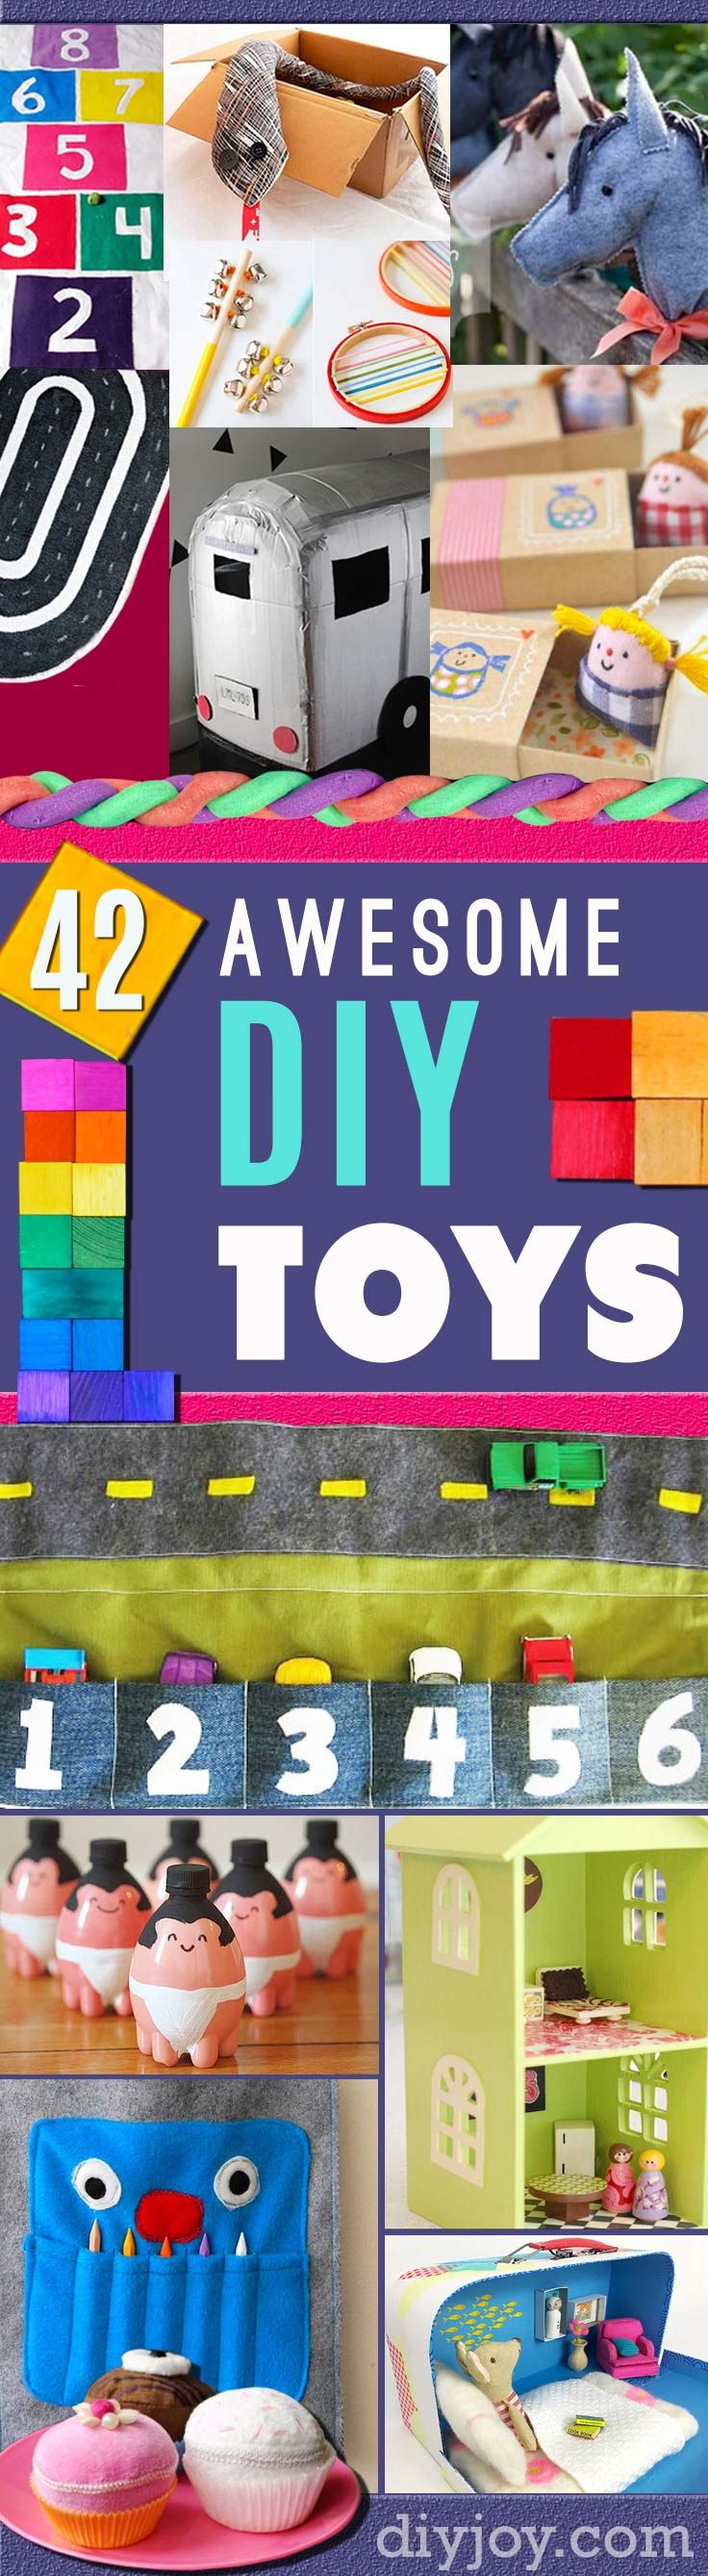 41 Fun DIY Gifts to Make For Kids Perfect Homemade Christmas